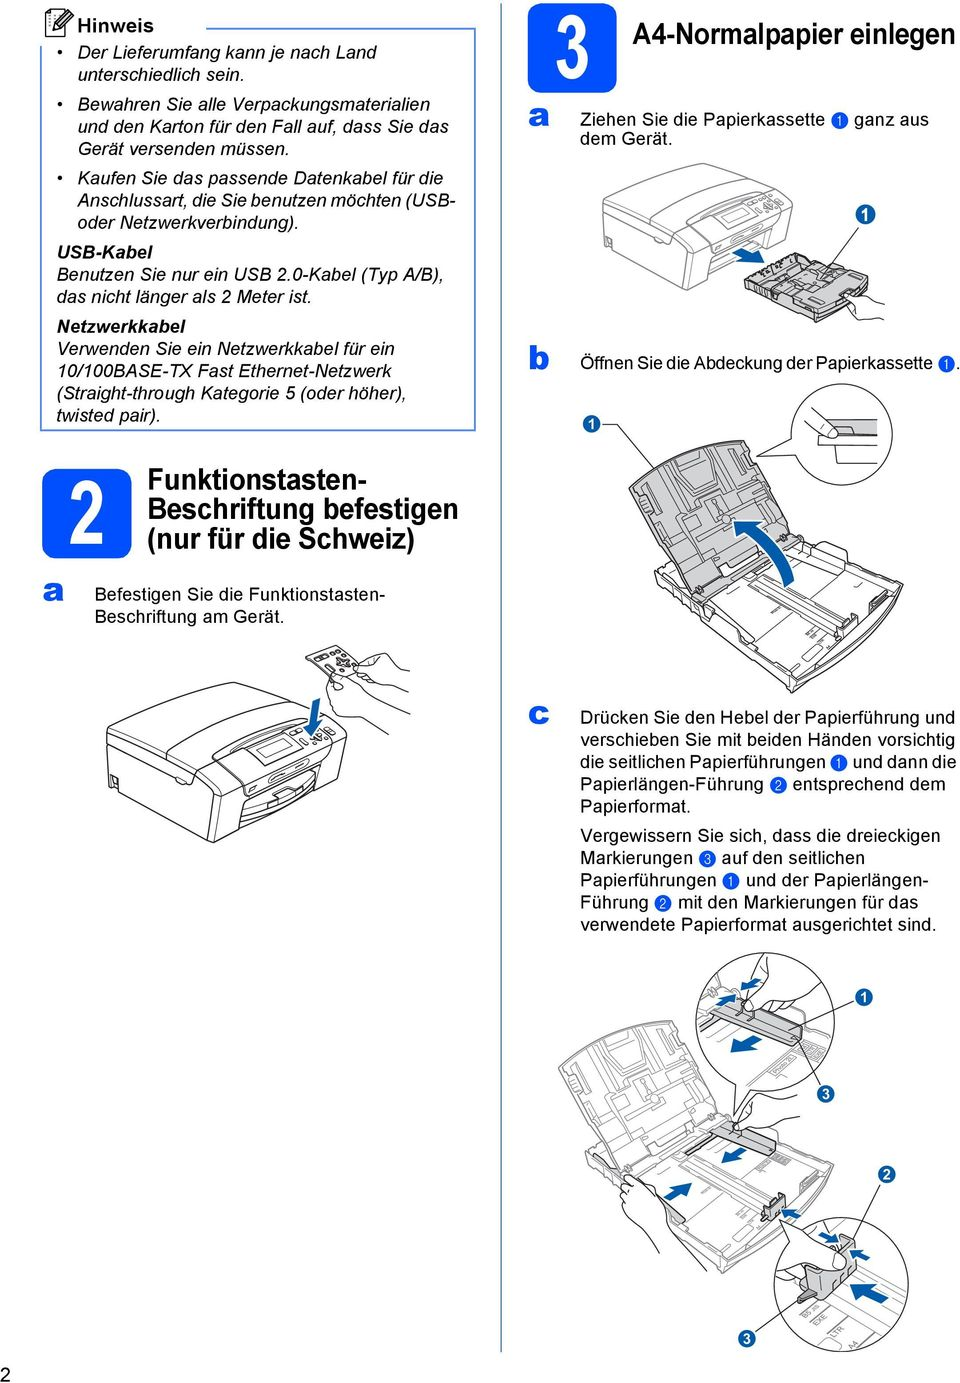 Netzwerkkel Verwenden Sie ein Netzwerkkel für ein 10/100BASE-TX Fst Ethernet-Netzwerk (Stright-through Ktegorie 5 (oder höher), twisted pir).